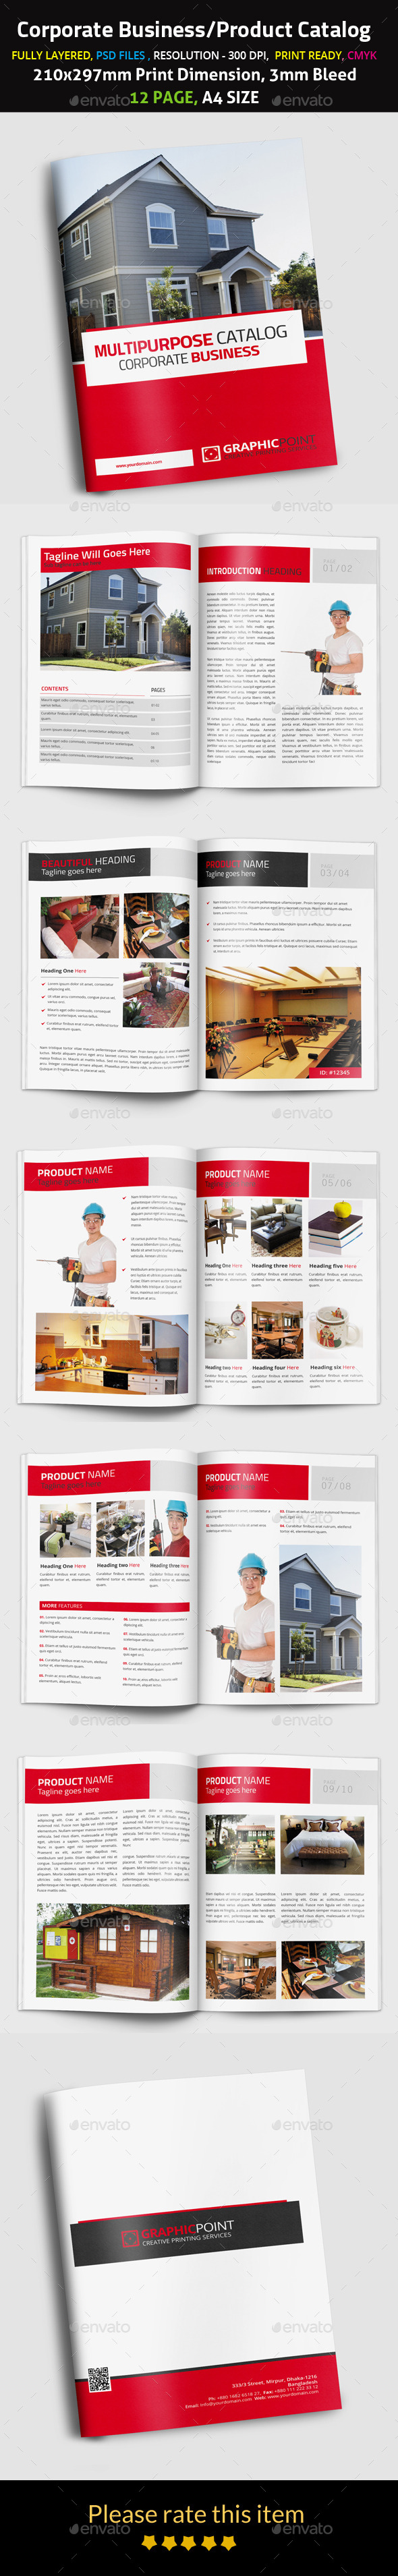 Corporate Business/Product Catalog - Brochures Print Templates